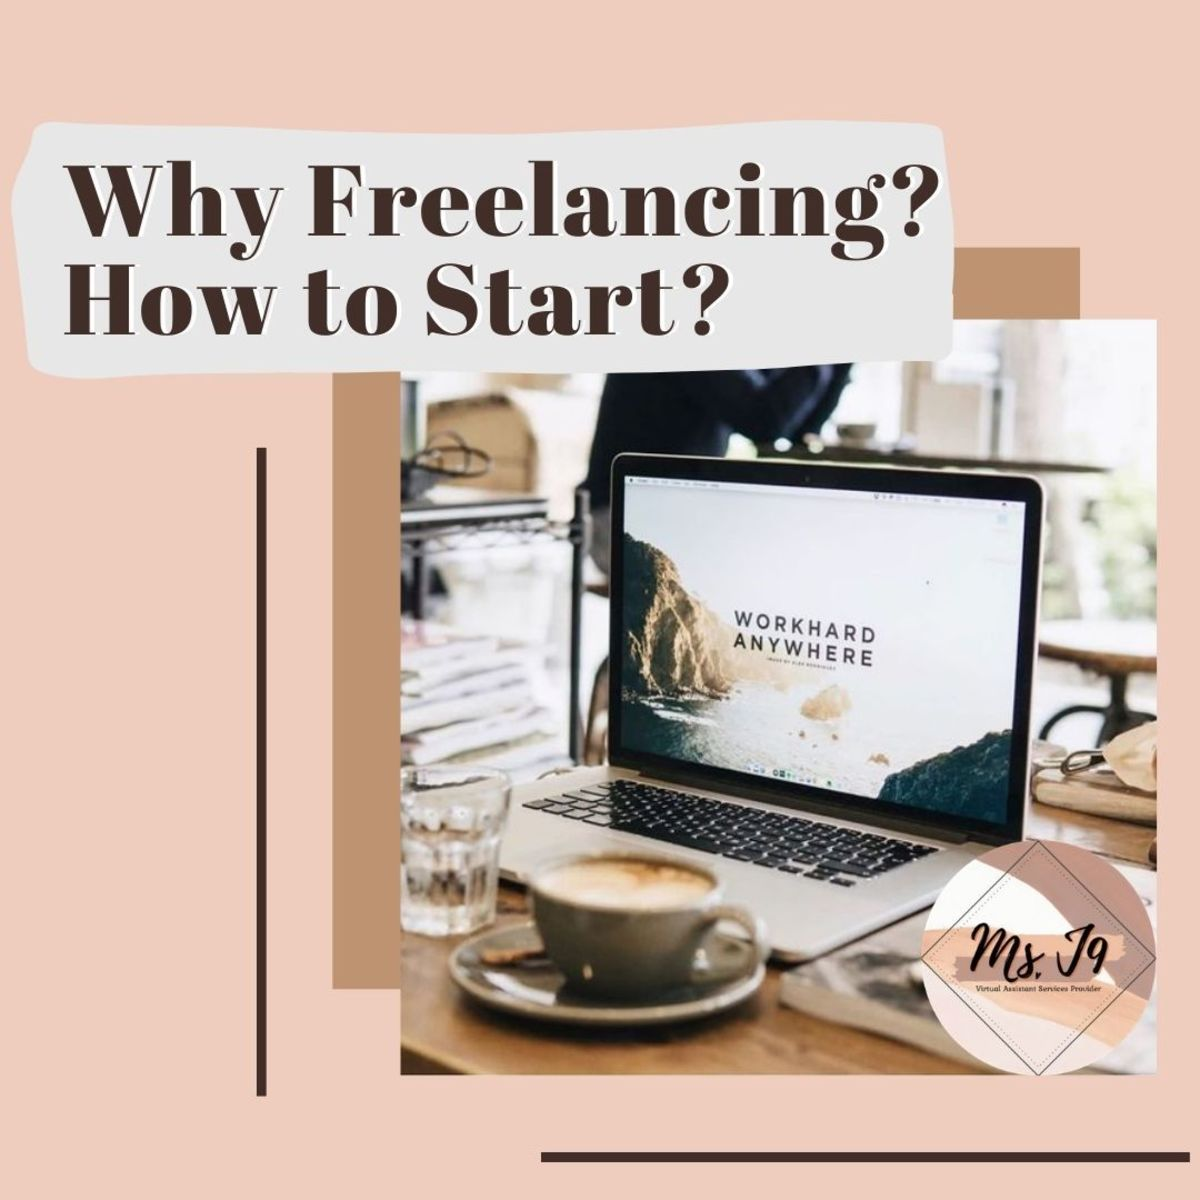 Why freelancing? How to start?